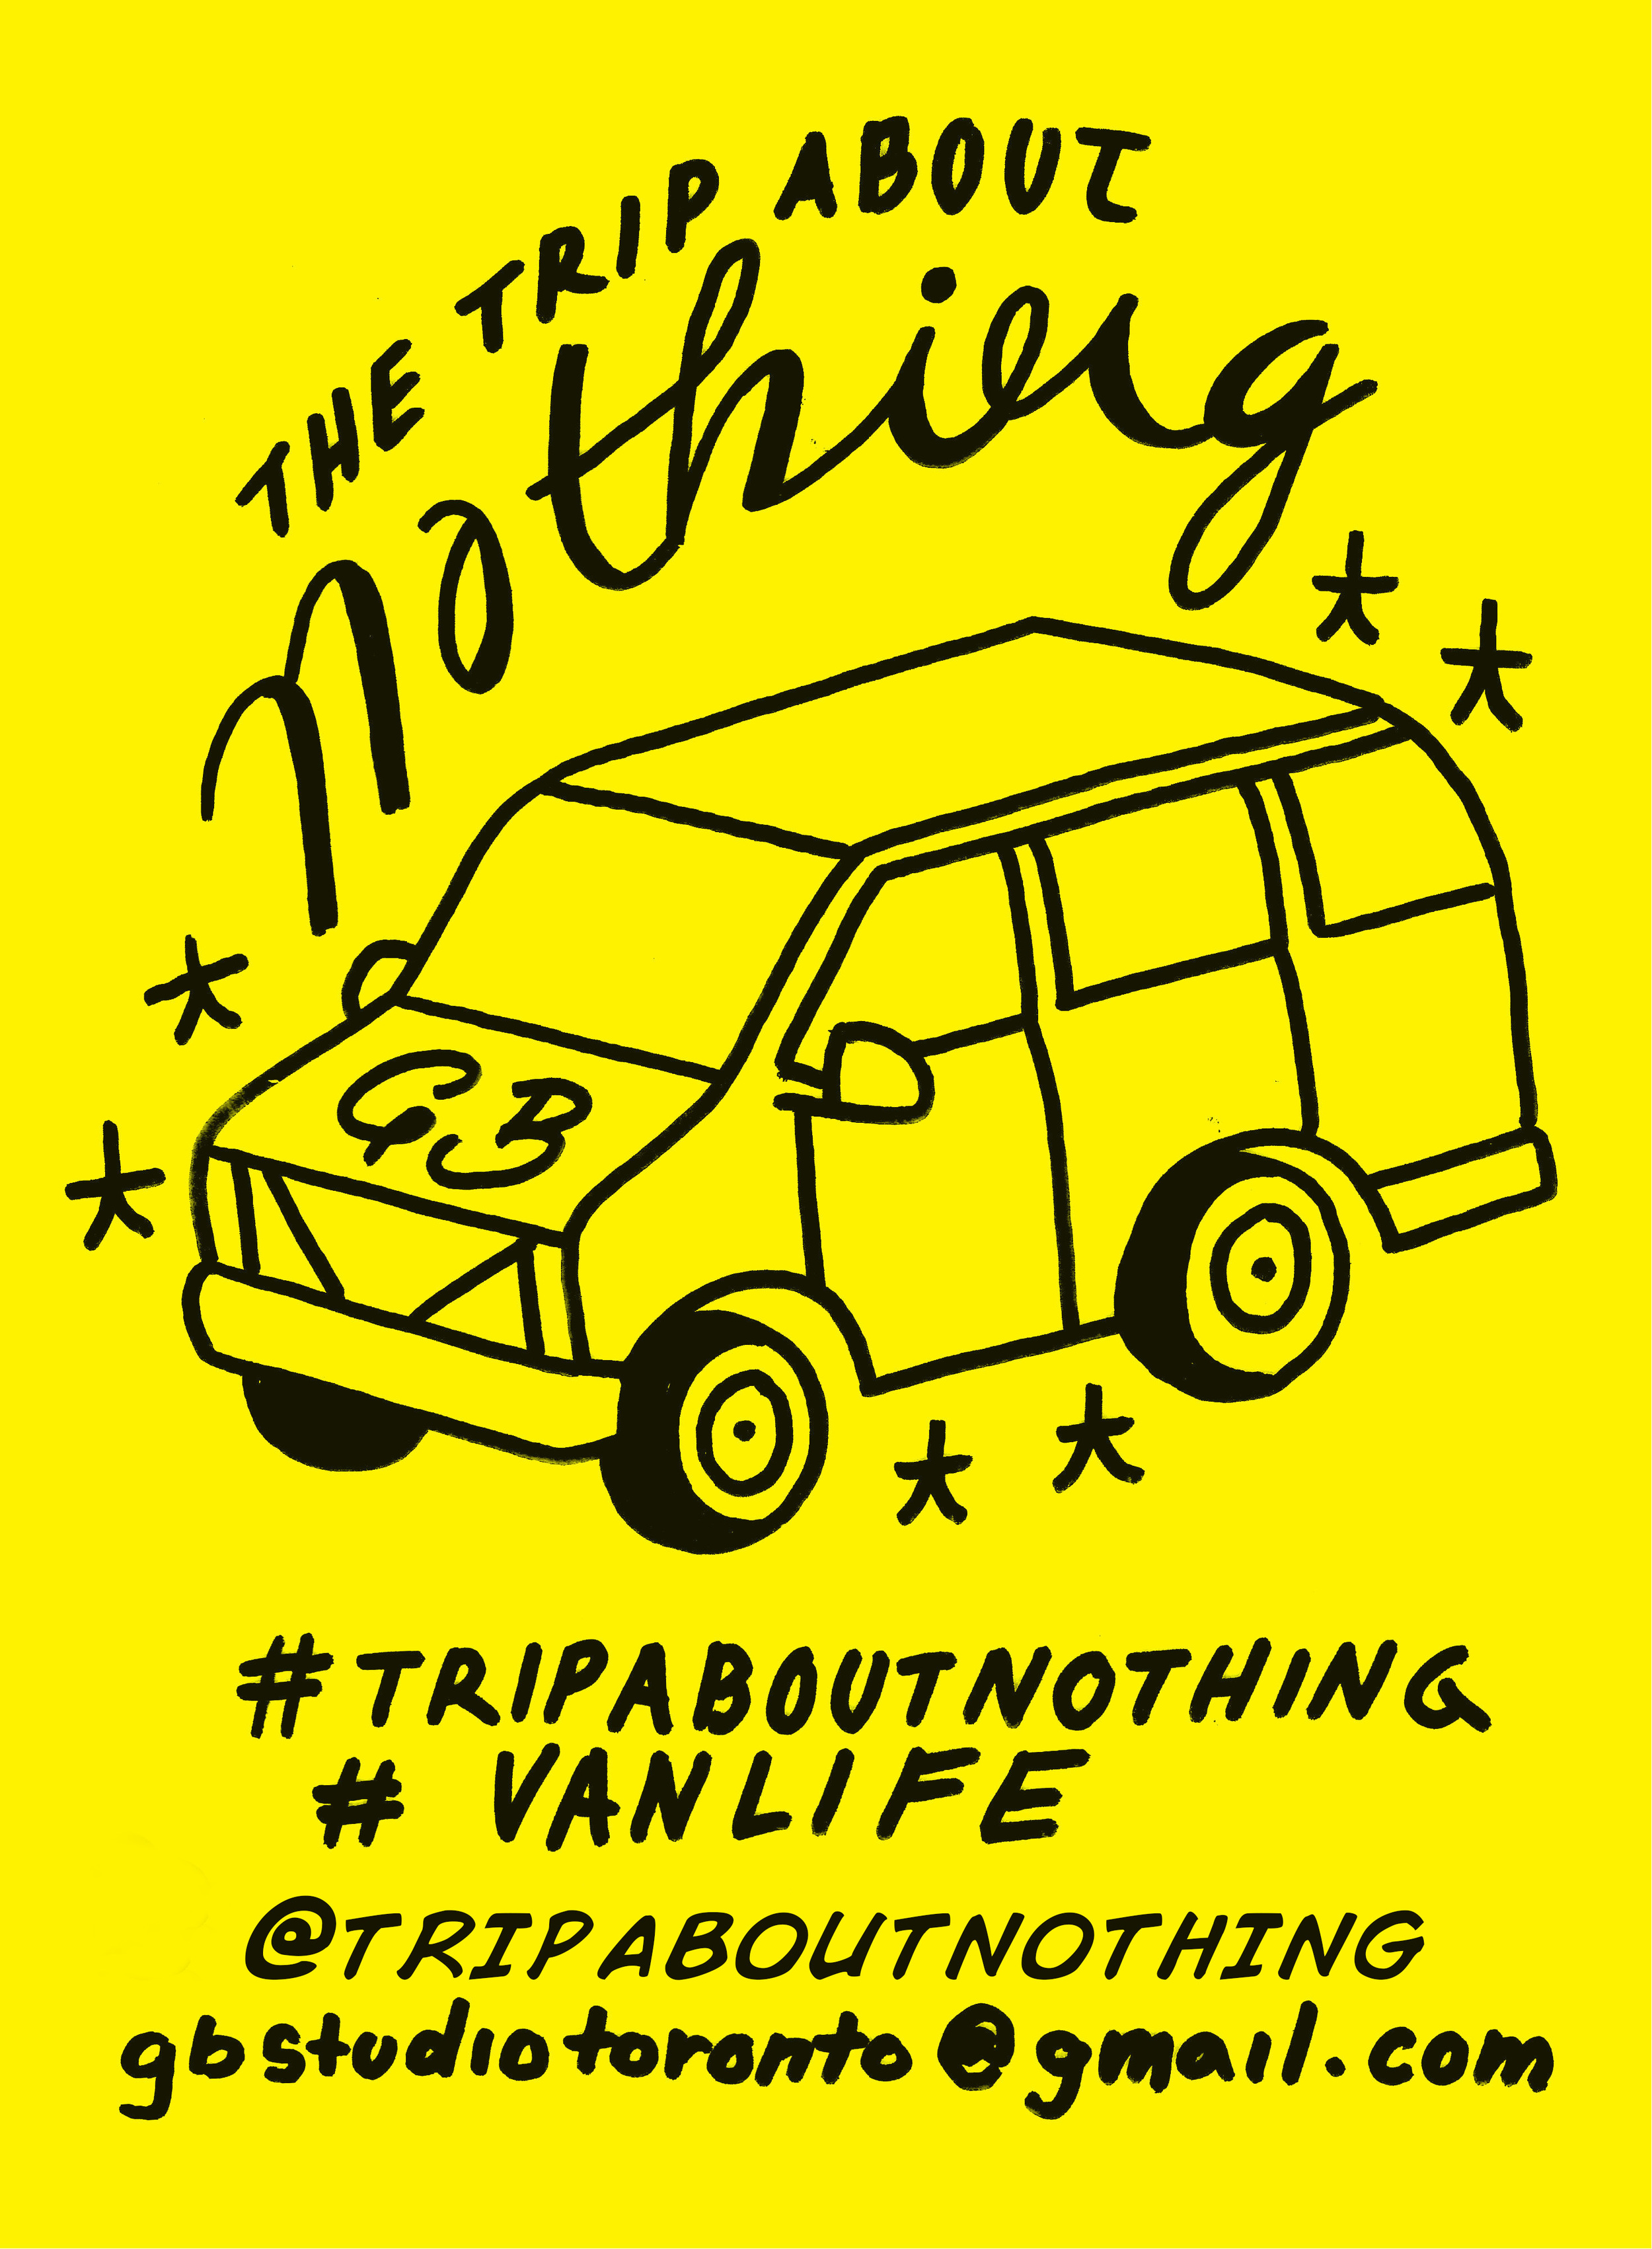 I have been seeking out vans scattered around Toronto and putting these flyers on the dashboards to spread the word about my  project . Vanlife and the mobile community seem to really stick together so I figured they'd be interested in keeping up with a fellow vanlifer!